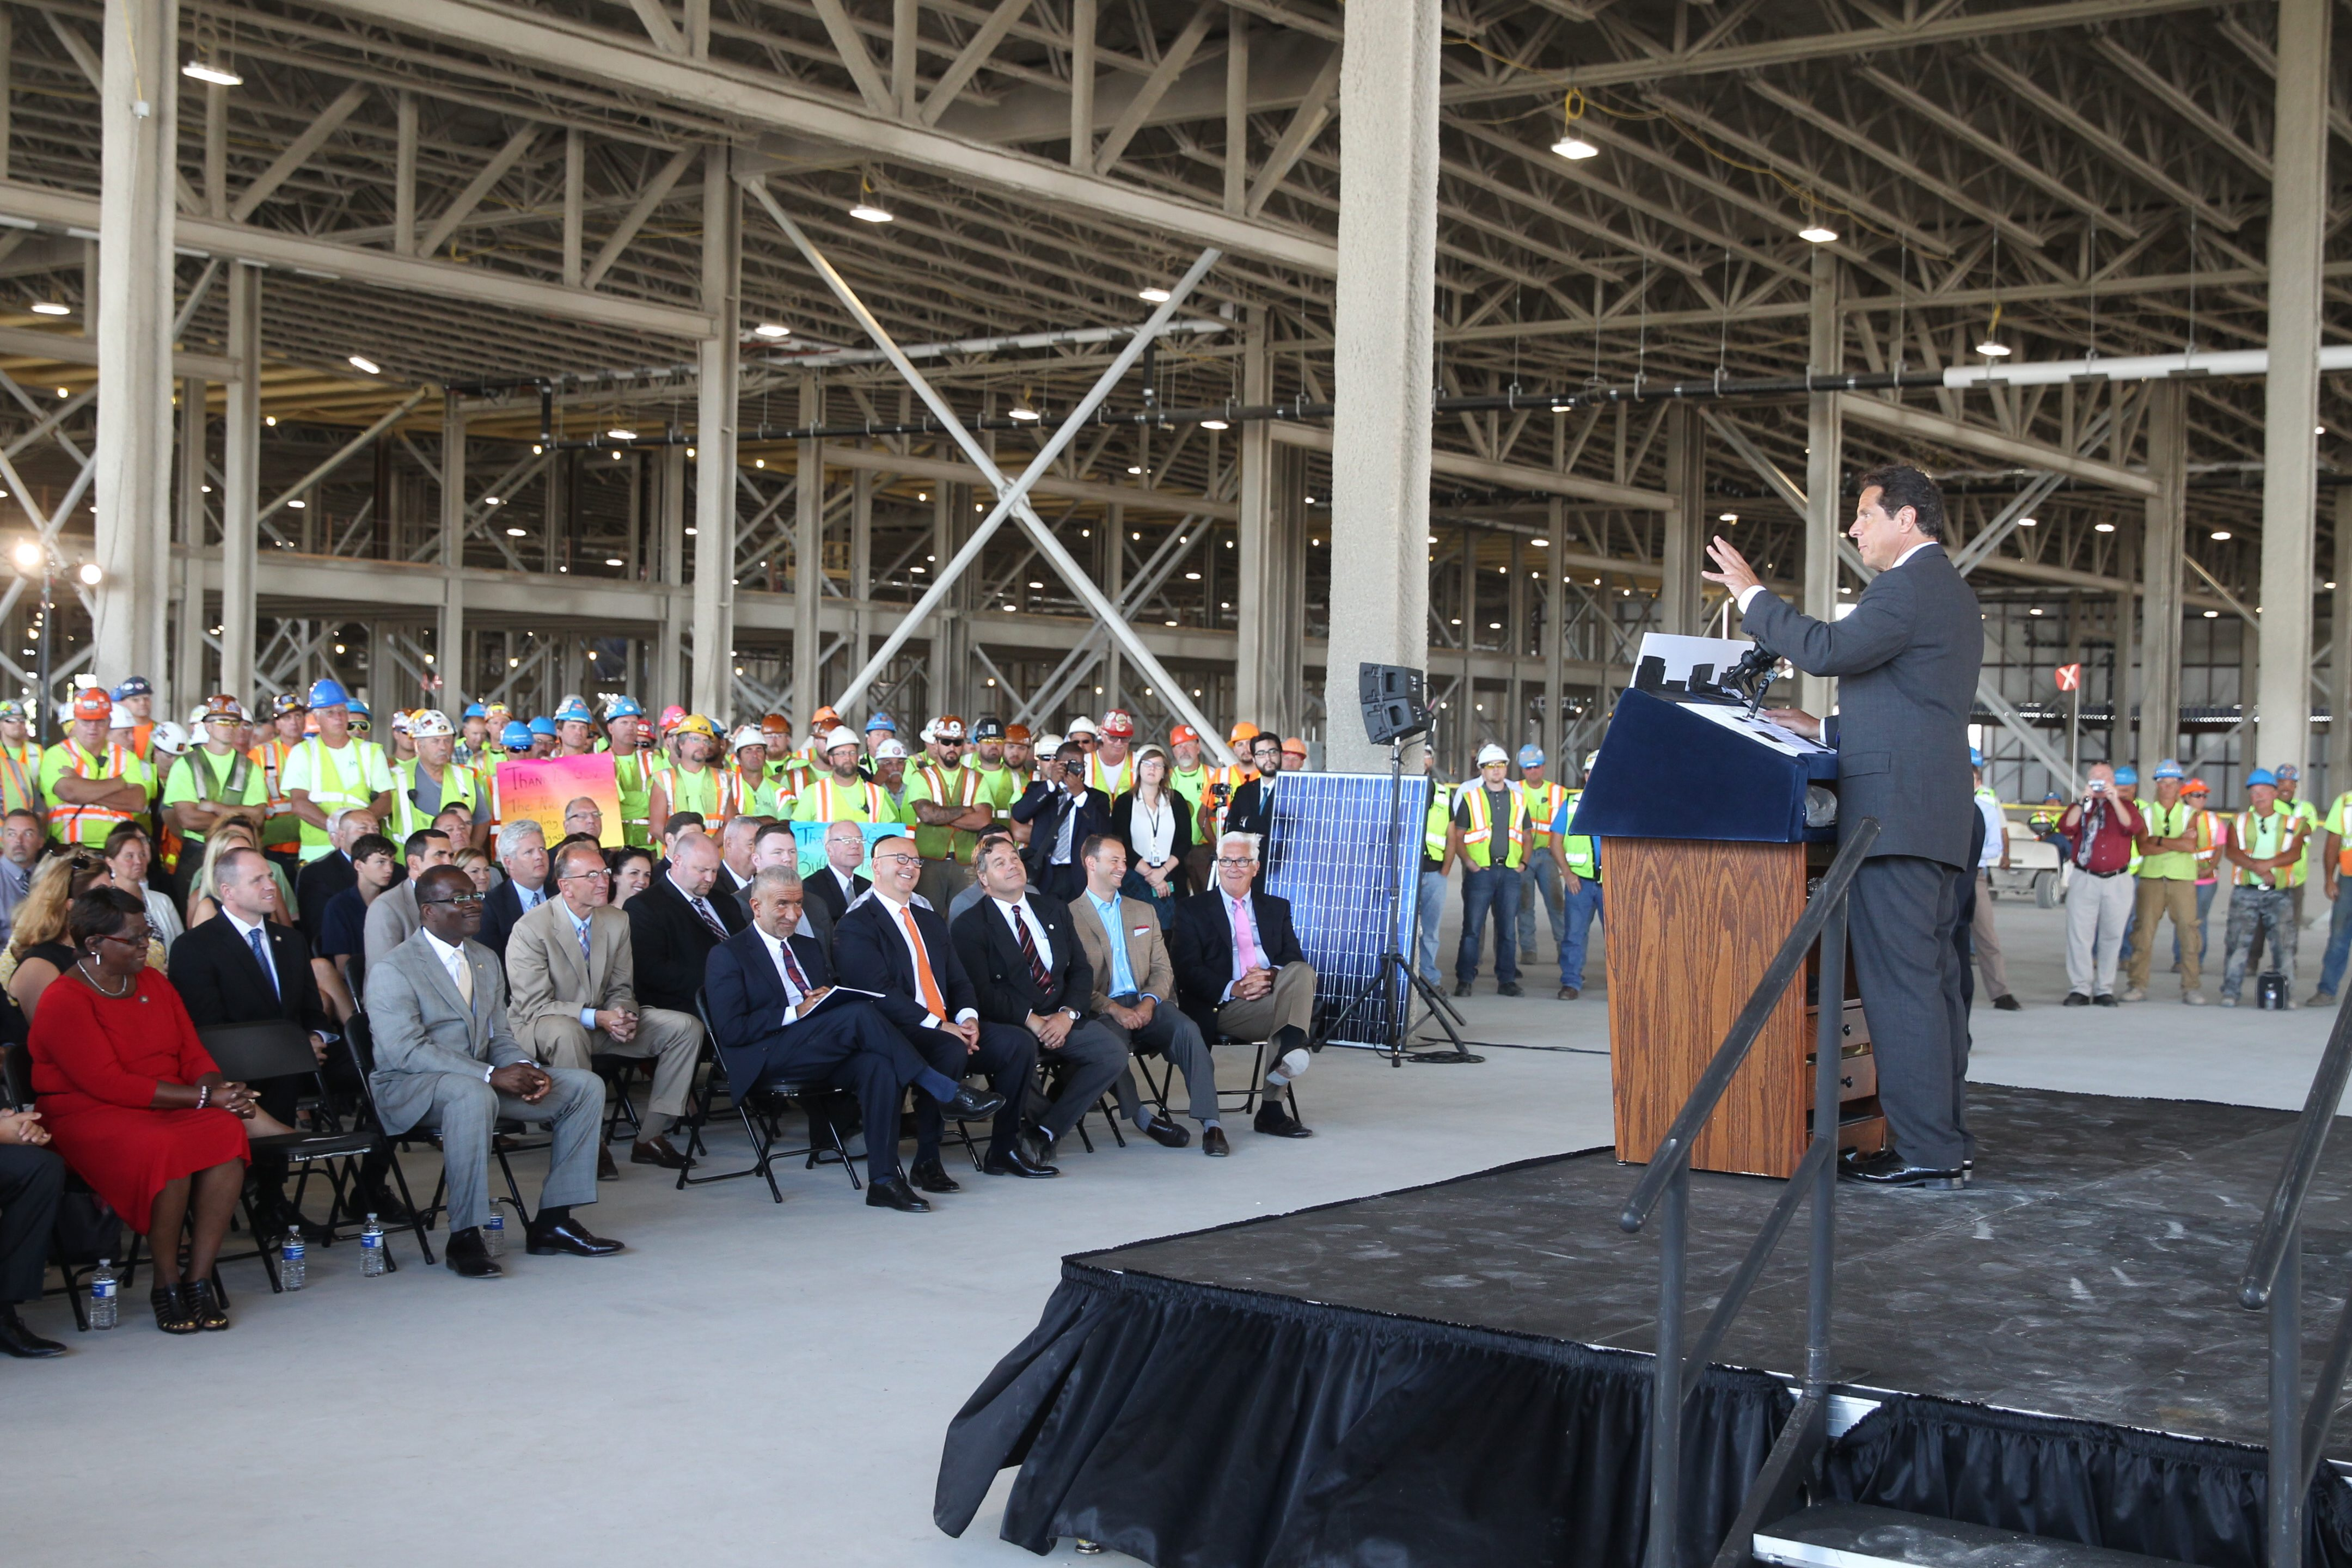 Gov. Andrew Cuomo speaks at a topping off ceremony at Solar City in Buffalo, N.Y., on Thursday, July 30, 2015. (John Hickey/Buffalo News)